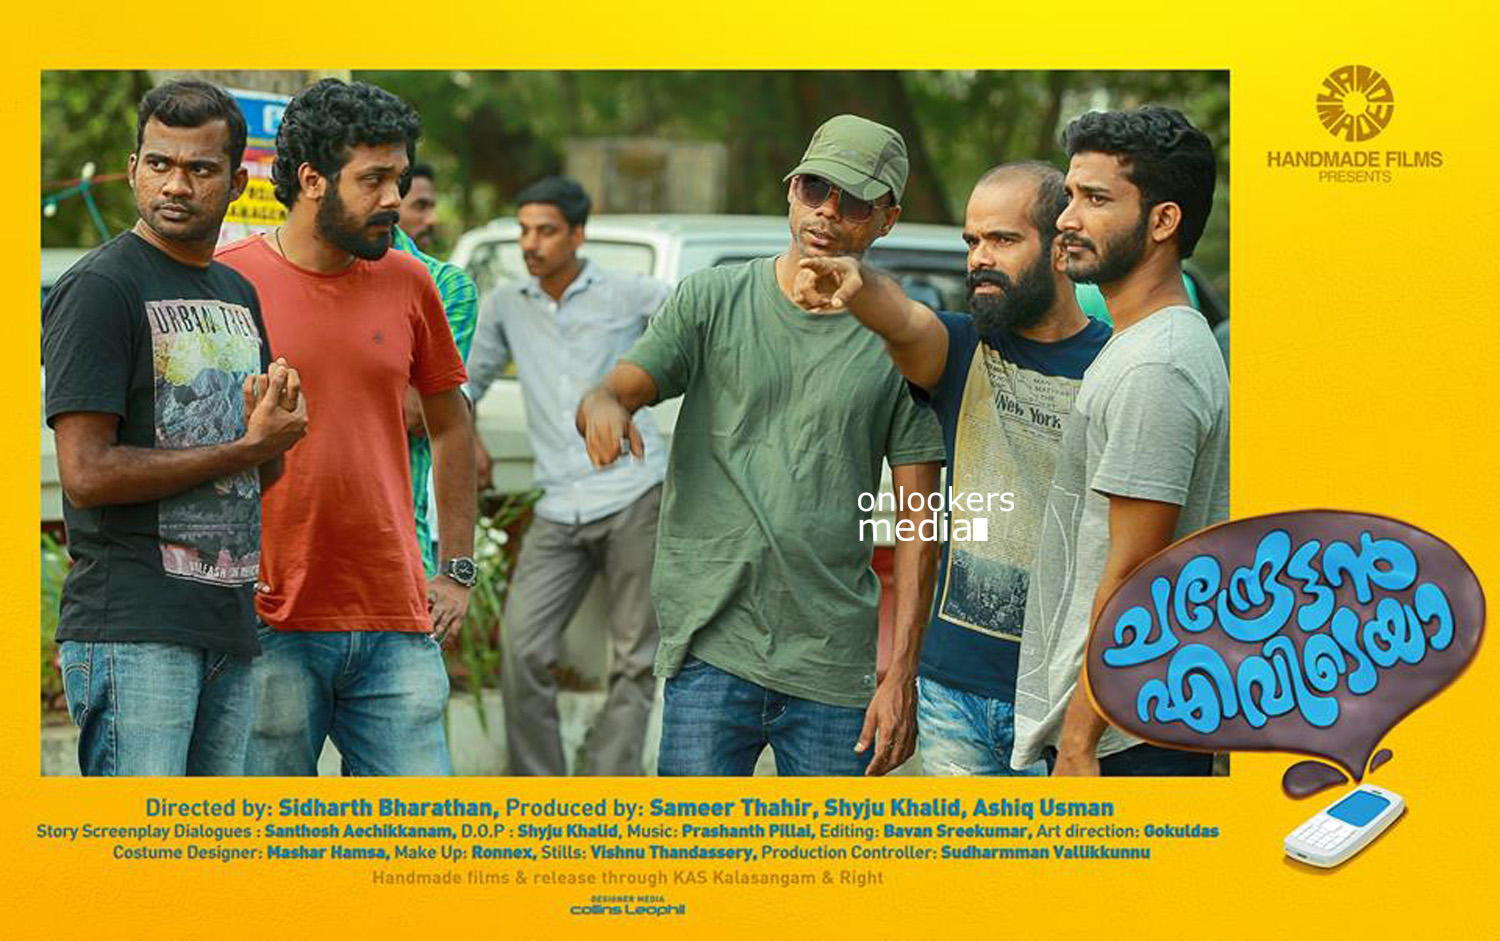 http://onlookersmedia.in/wp-content/uploads/2015/04/Chandrettan-Evideya-Posters-Stills-Images-Dileep-Namitha-Pramod-Anusree-Malayalam-Movie-2015-Onlookers-Media-3.jpg